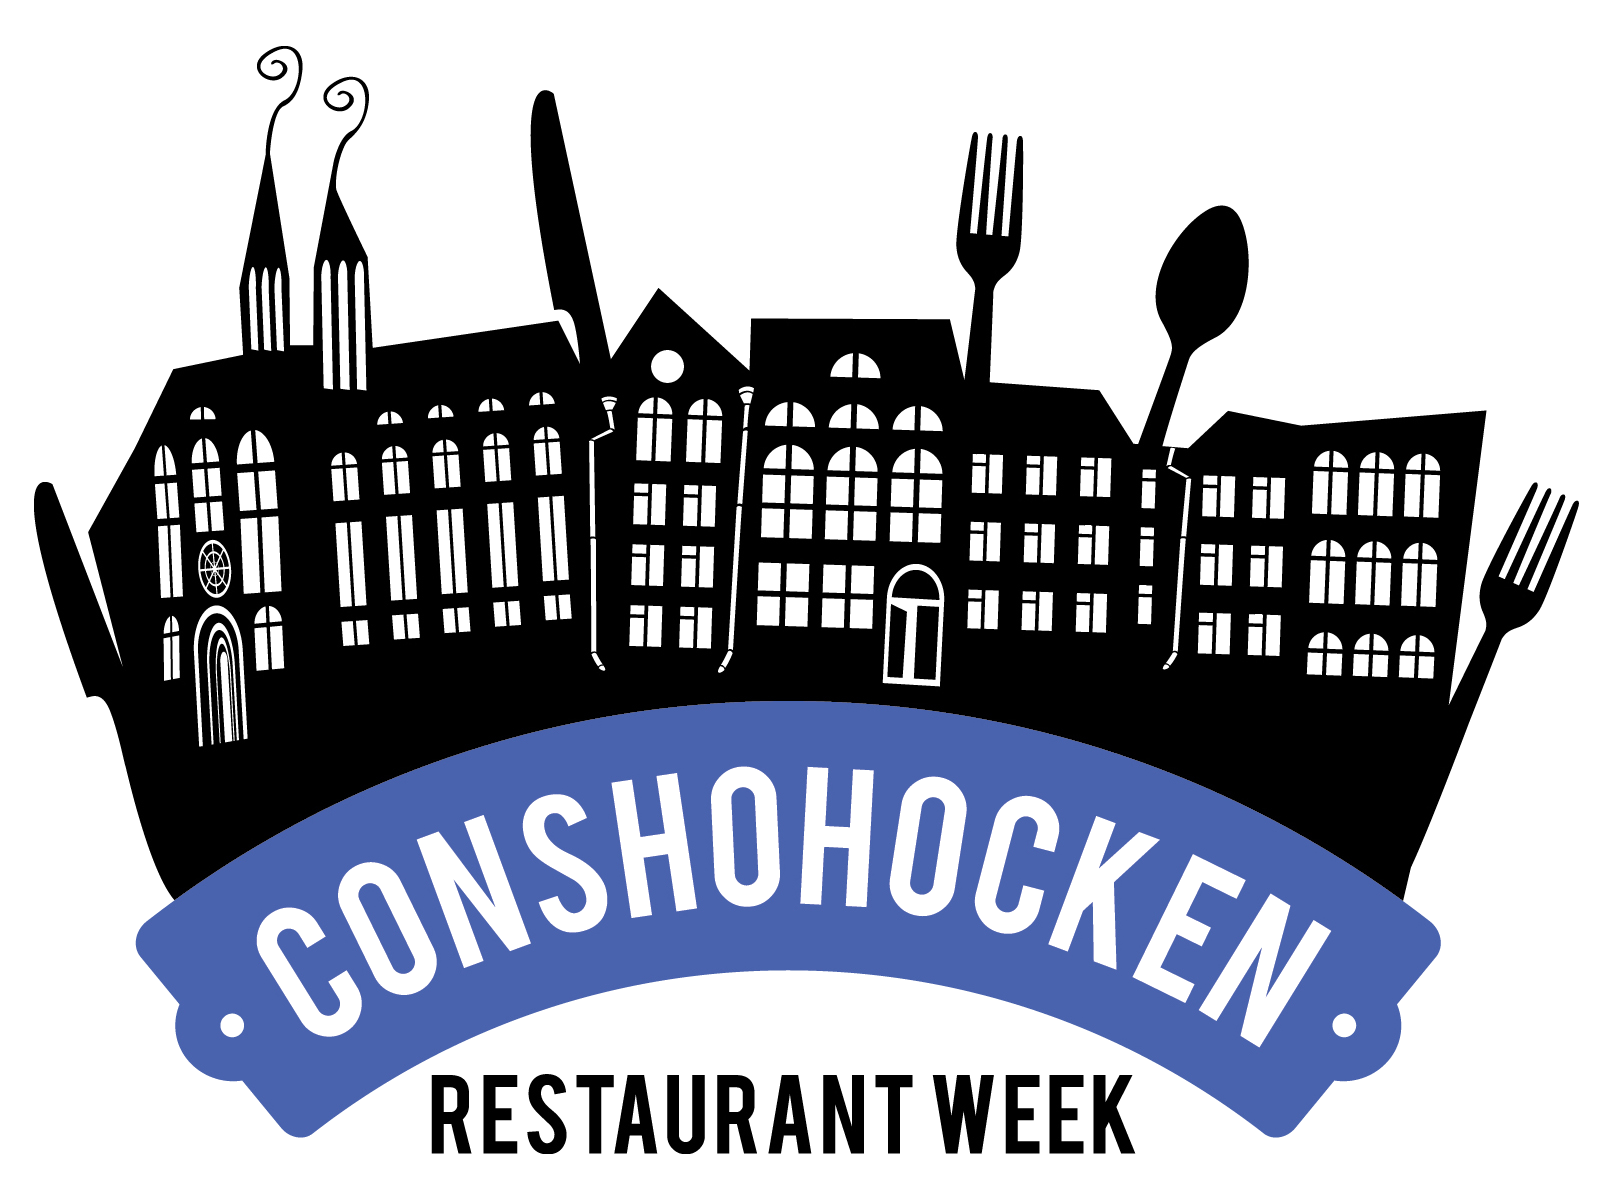 Conshohocken Restaurant Week